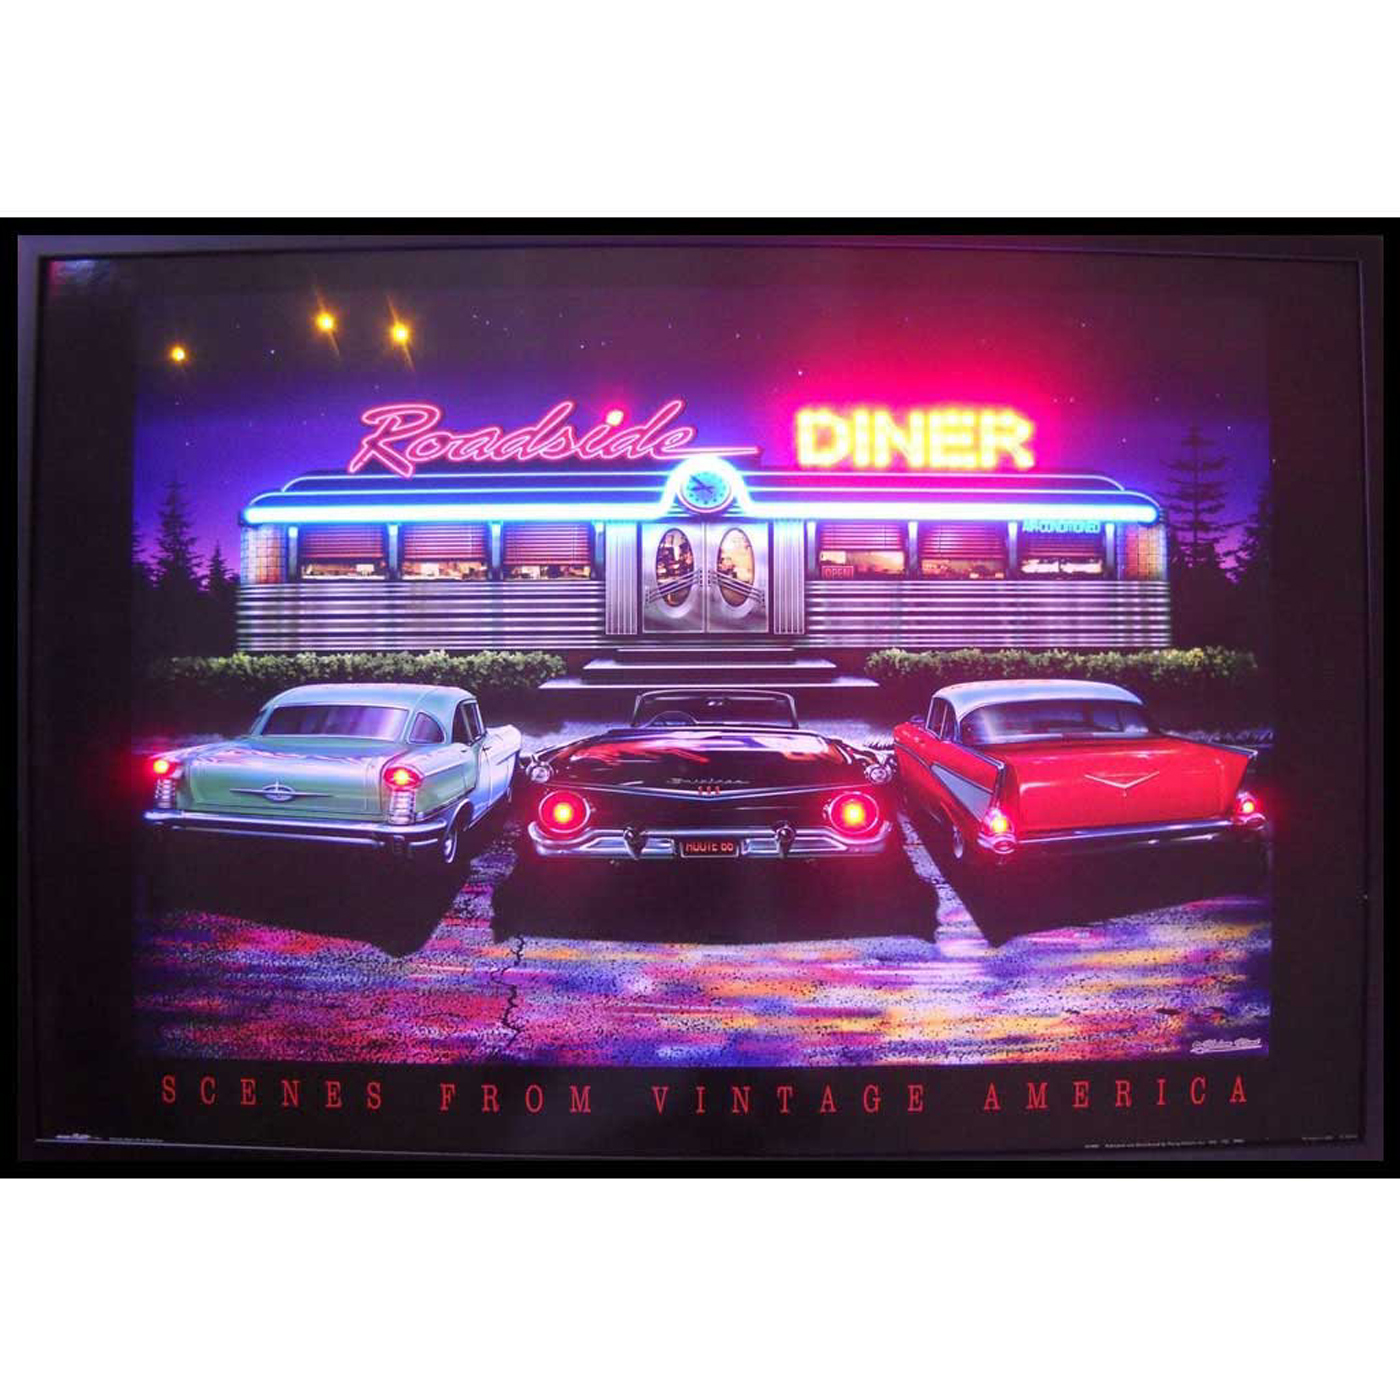 roadside diner neon led art picture by neonetics in neon light art. Black Bedroom Furniture Sets. Home Design Ideas